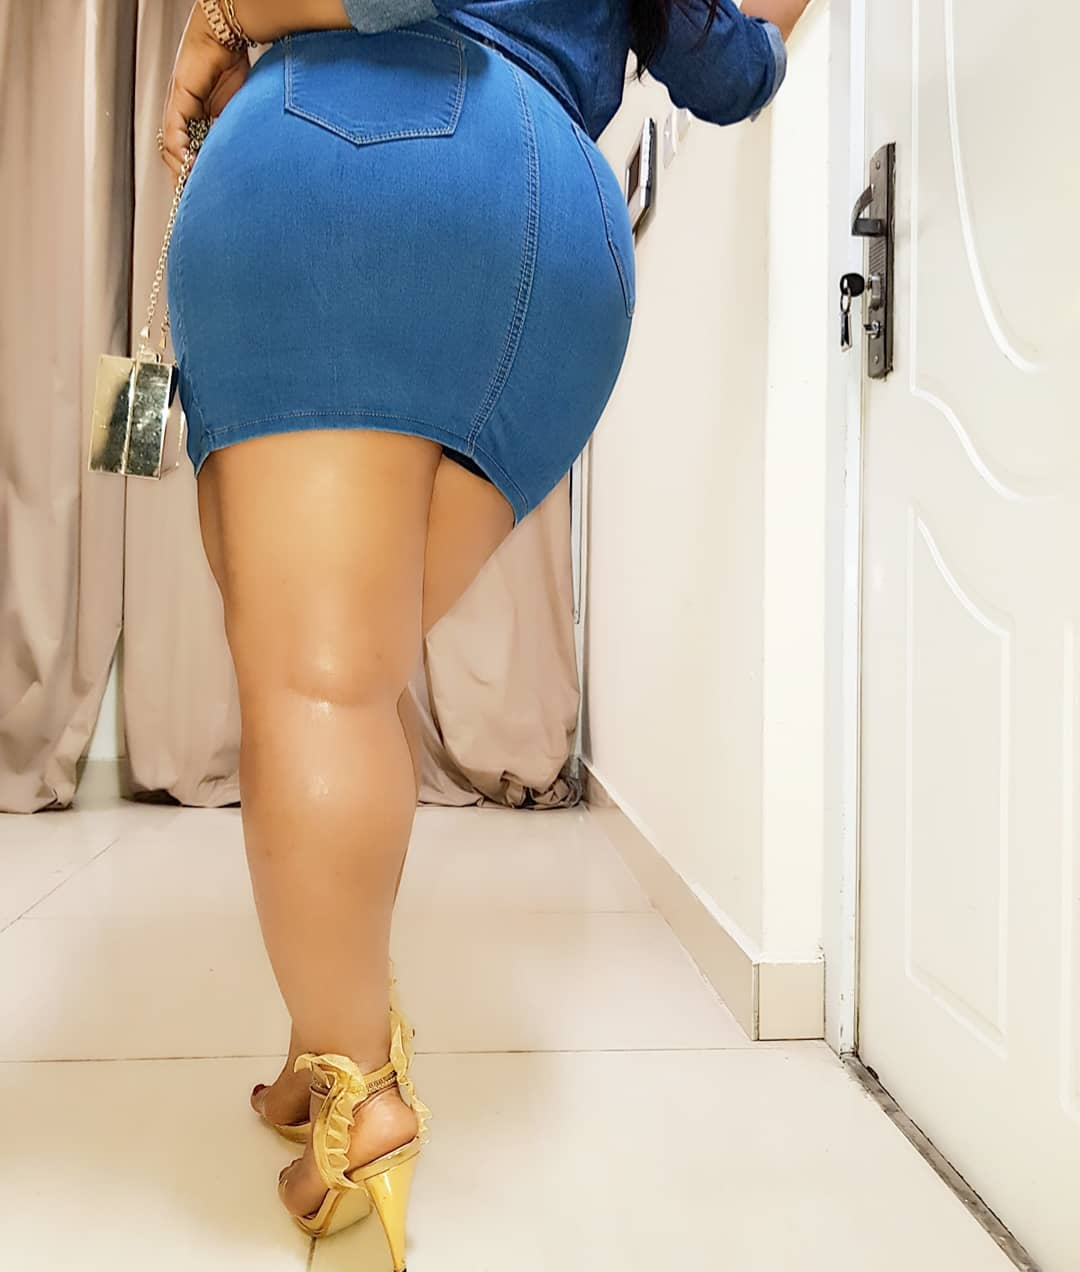 100% natural ! Moyo Lawal shares video of her massive booty